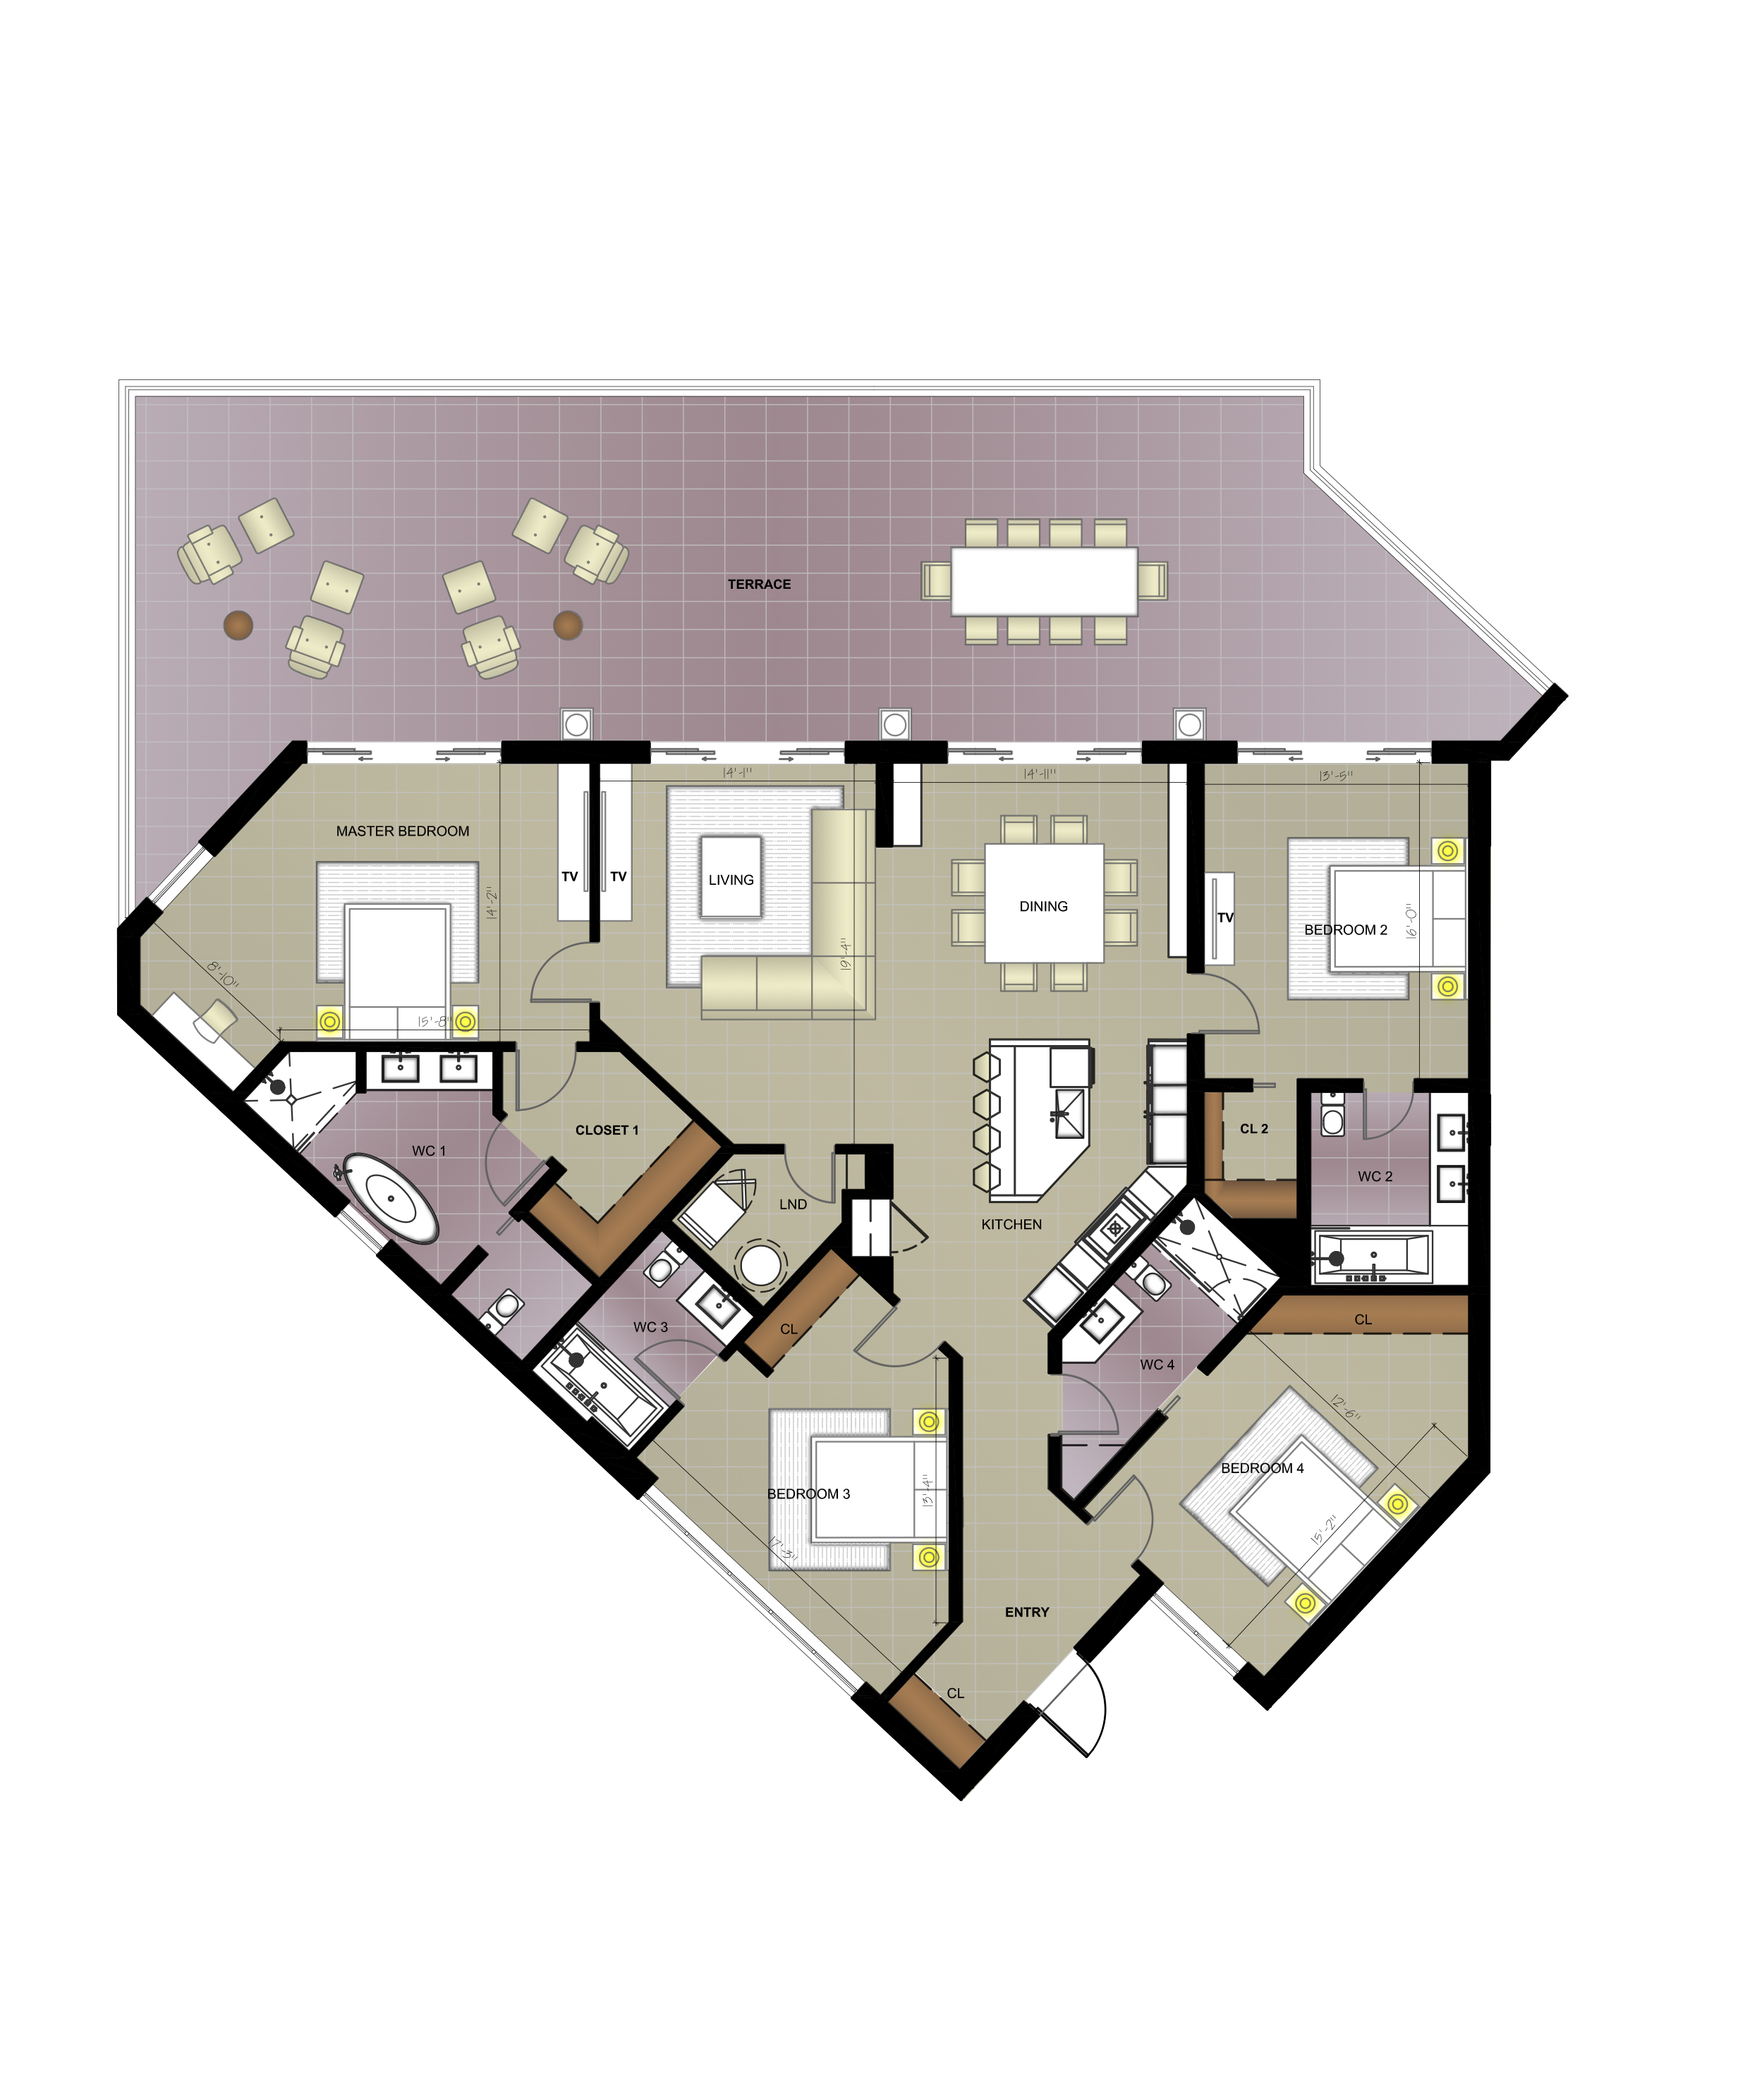 RESIDENCE #501/502 - 4 bed · 4 bath · 3,800 SQ FTThis combined, corner residence includes a master suite with a walk in wardrobe and soaking tub, three ensuite bedrooms, entertainers kitchen with quartz counter-tops and stainless steel appliances, spacious lounge, guest bathroom, generous indoor/outdoor dining areas, and private balcony overlooking the ocean. The 3,800 square foot unit also includes reserved underground parking and private cabana access.Listed at US$3,570,000